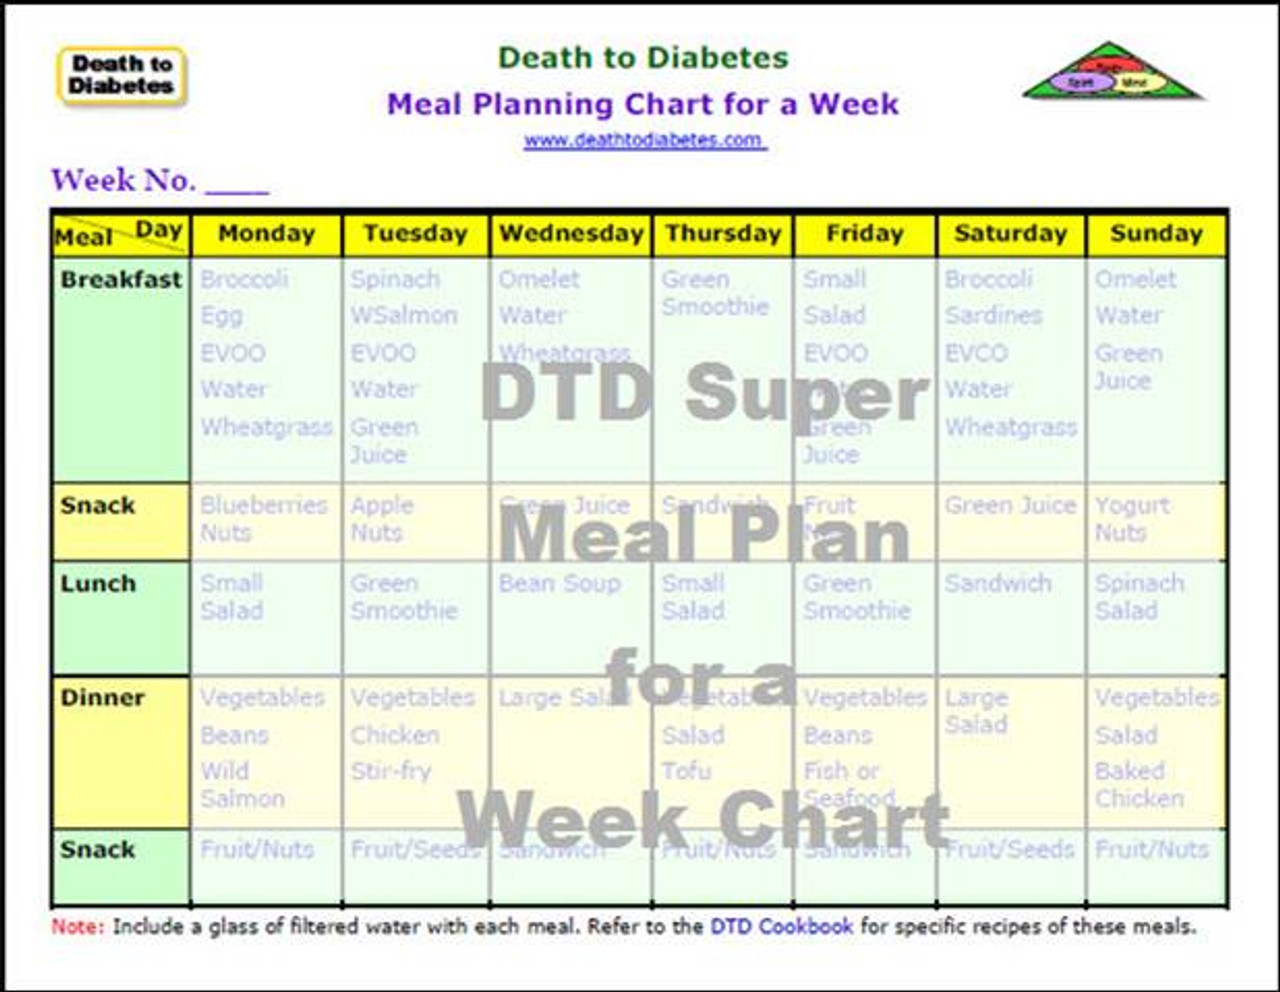 meal planning chart for a week